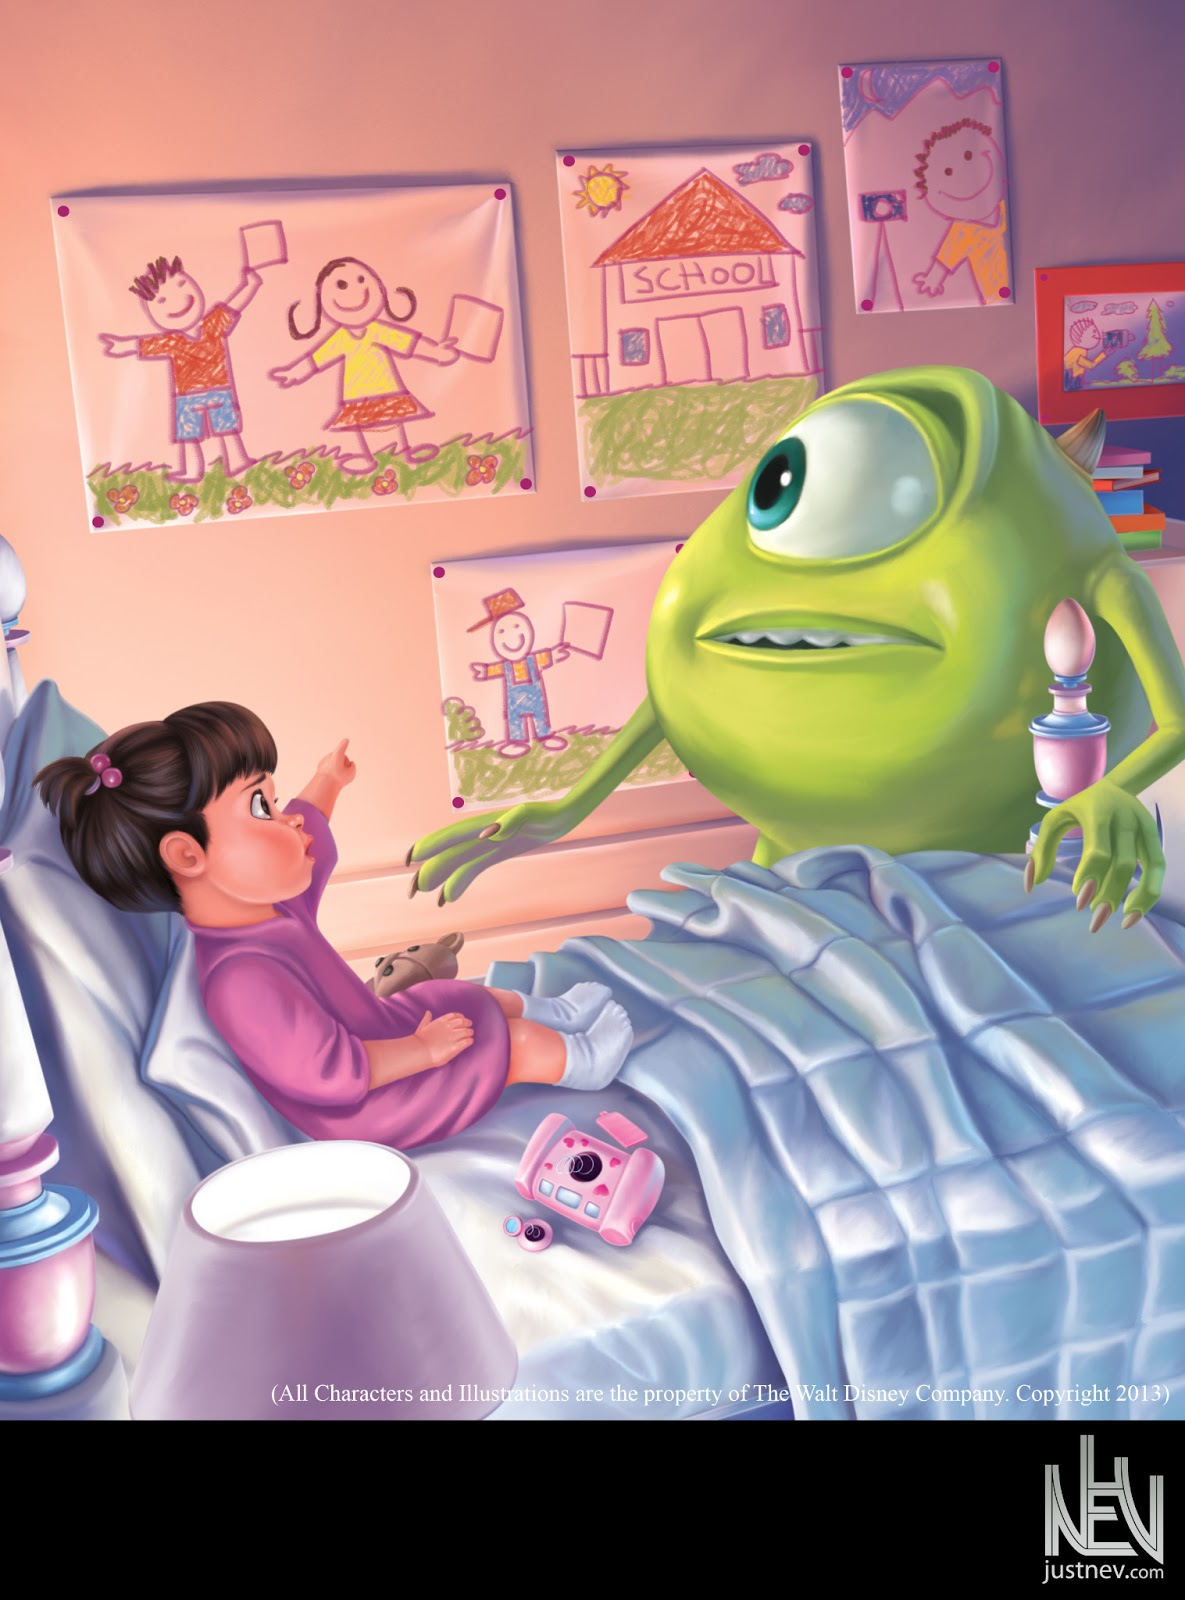 Illustrations Monsters Inc Digital All Characters And